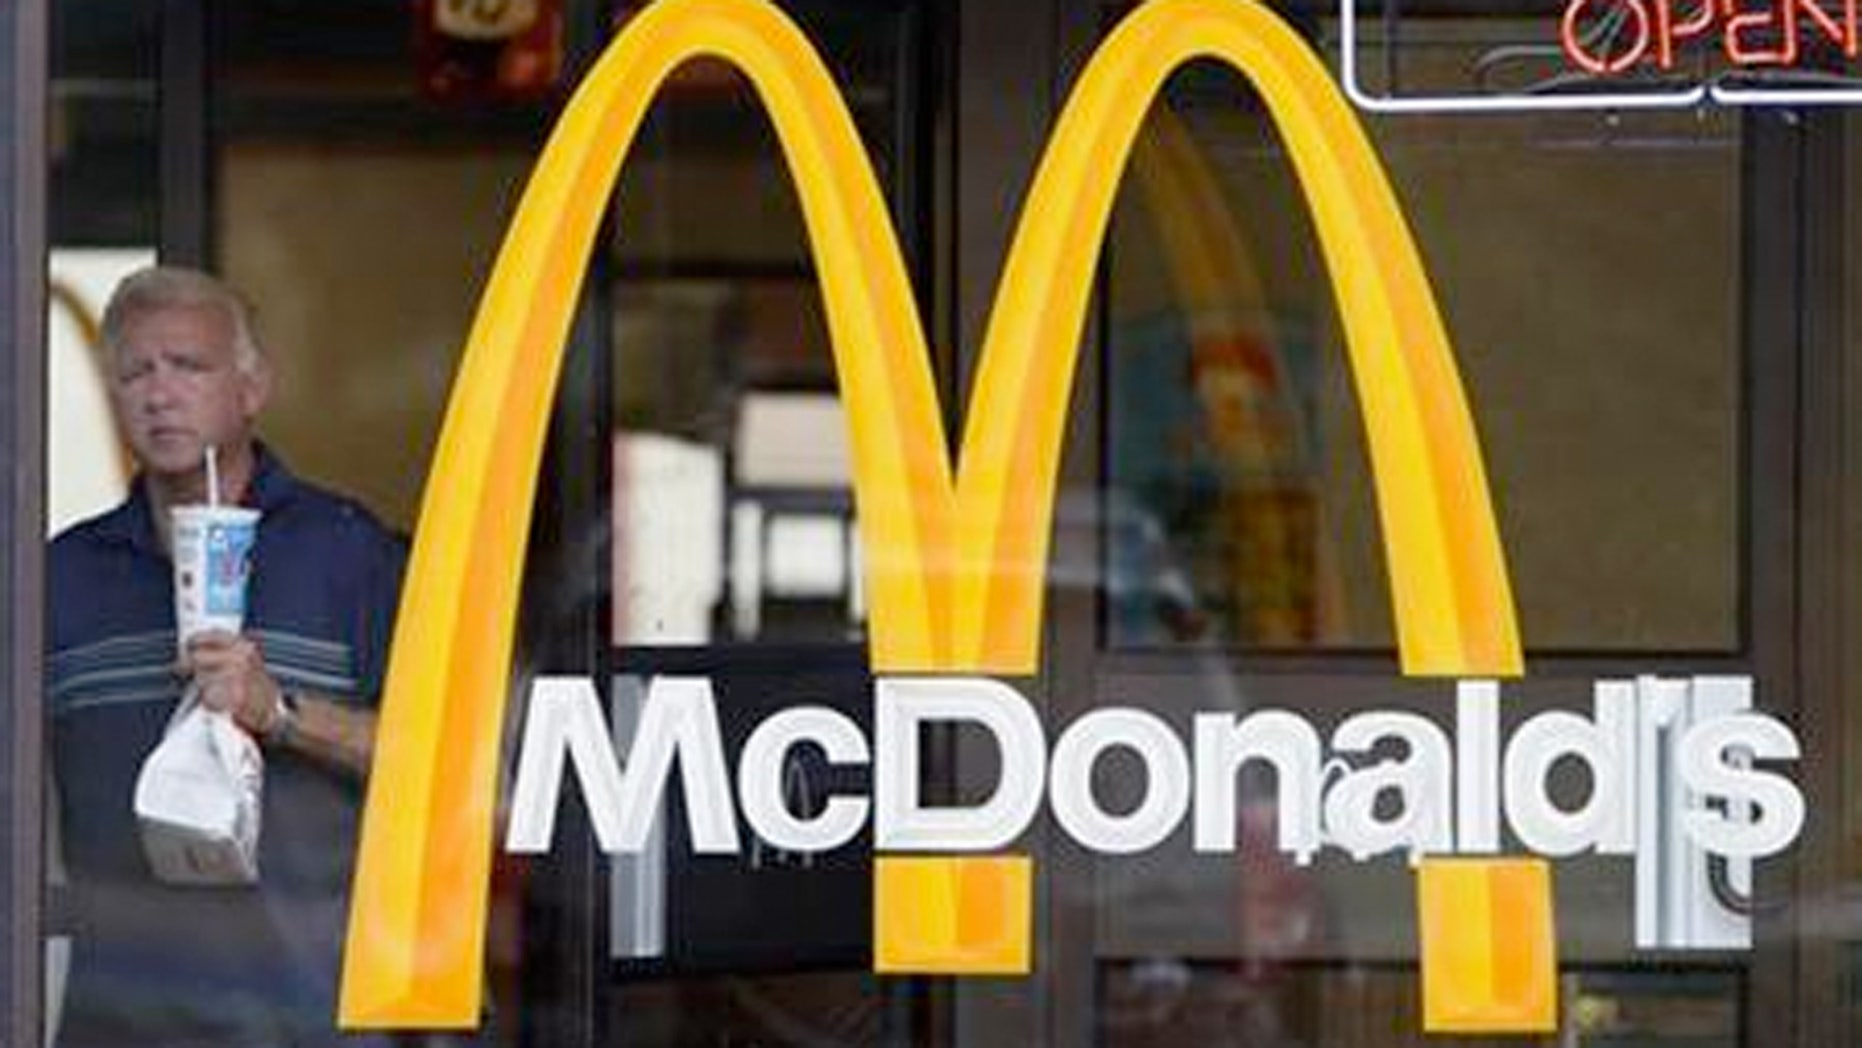 Some UK McDonald's locations are banning teens 18 and under from dining in the restaurants without an adult.